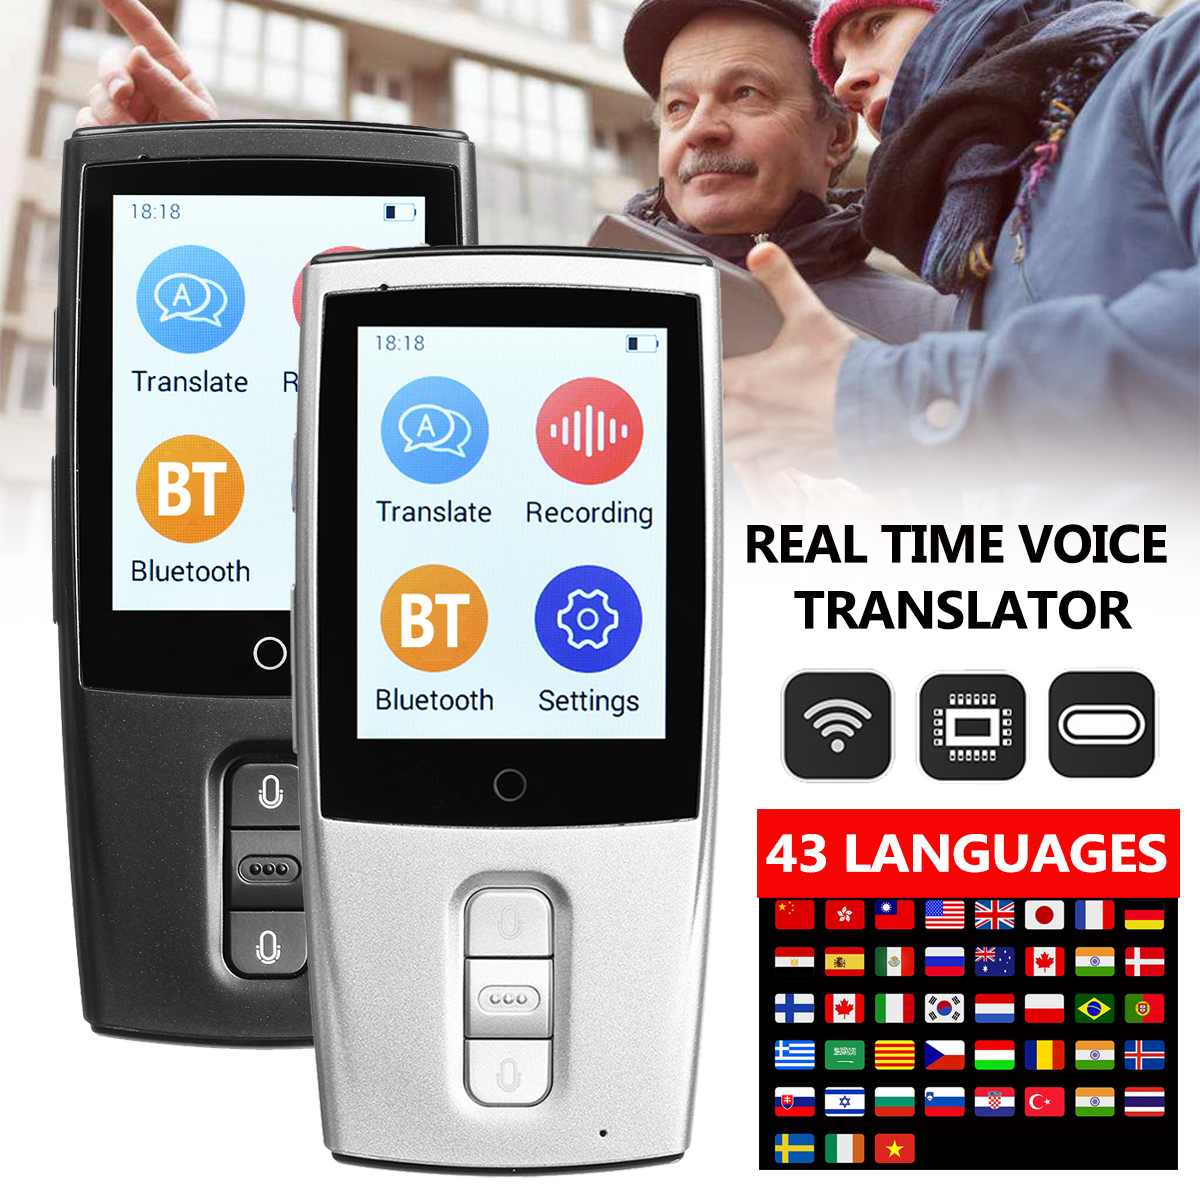 Smart Voice Translator Portable English Russian Translator Traductor Voice Real Time WiFi 43 Languages Travel Meeting BusinessSmart Voice Translator Portable English Russian Translator Traductor Voice Real Time WiFi 43 Languages Travel Meeting Business